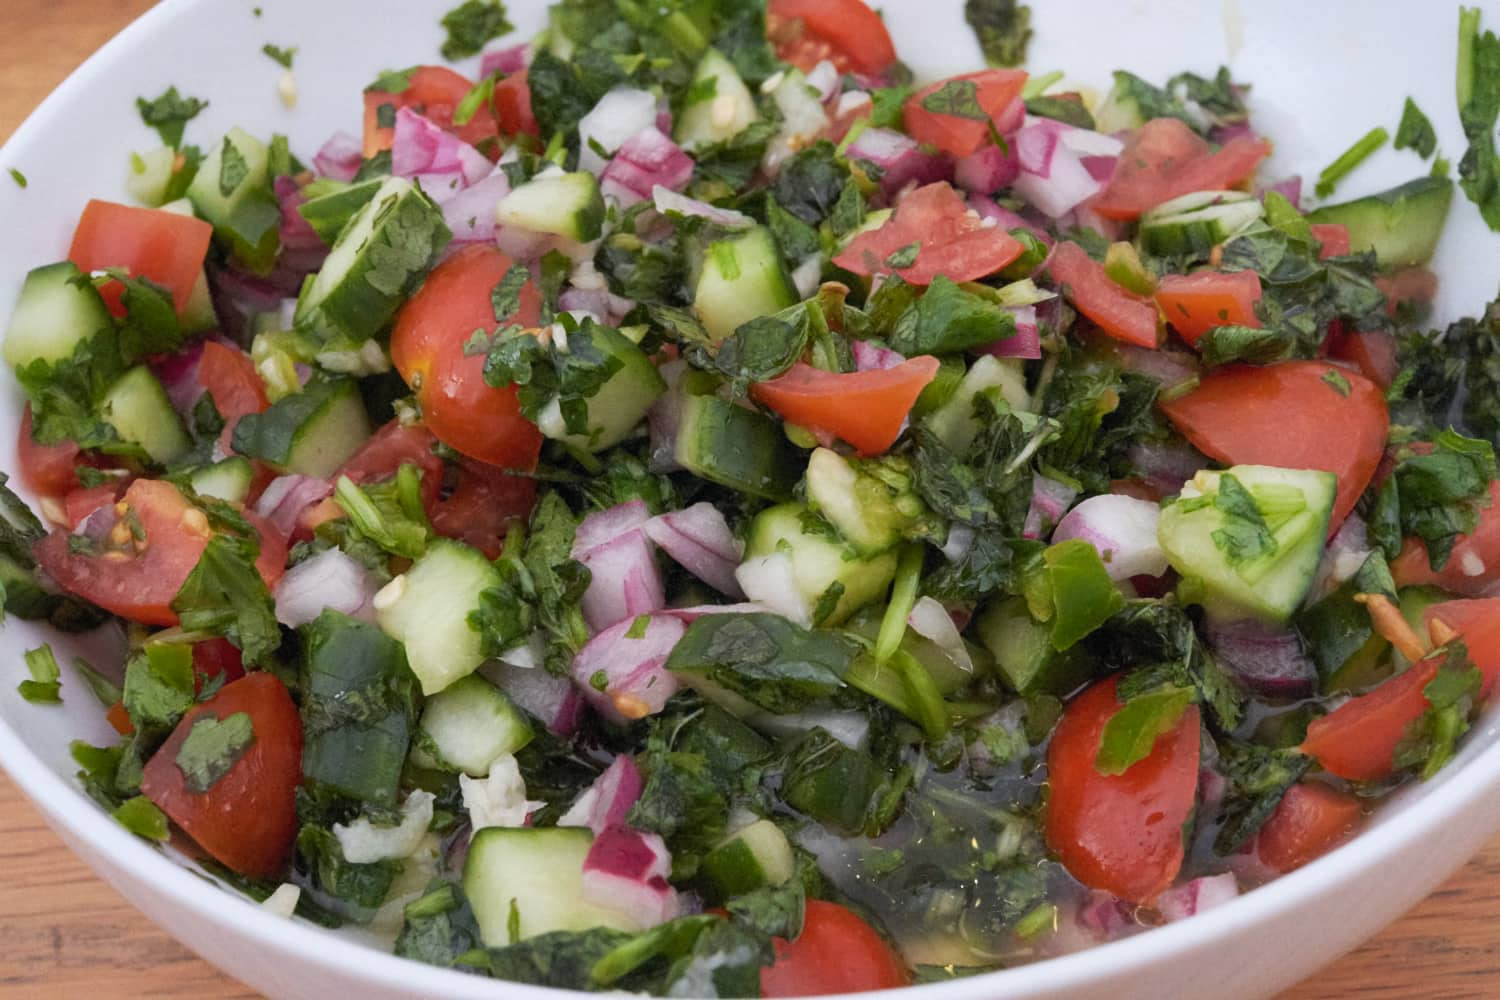 Tasty Homemade Tomato Salsa